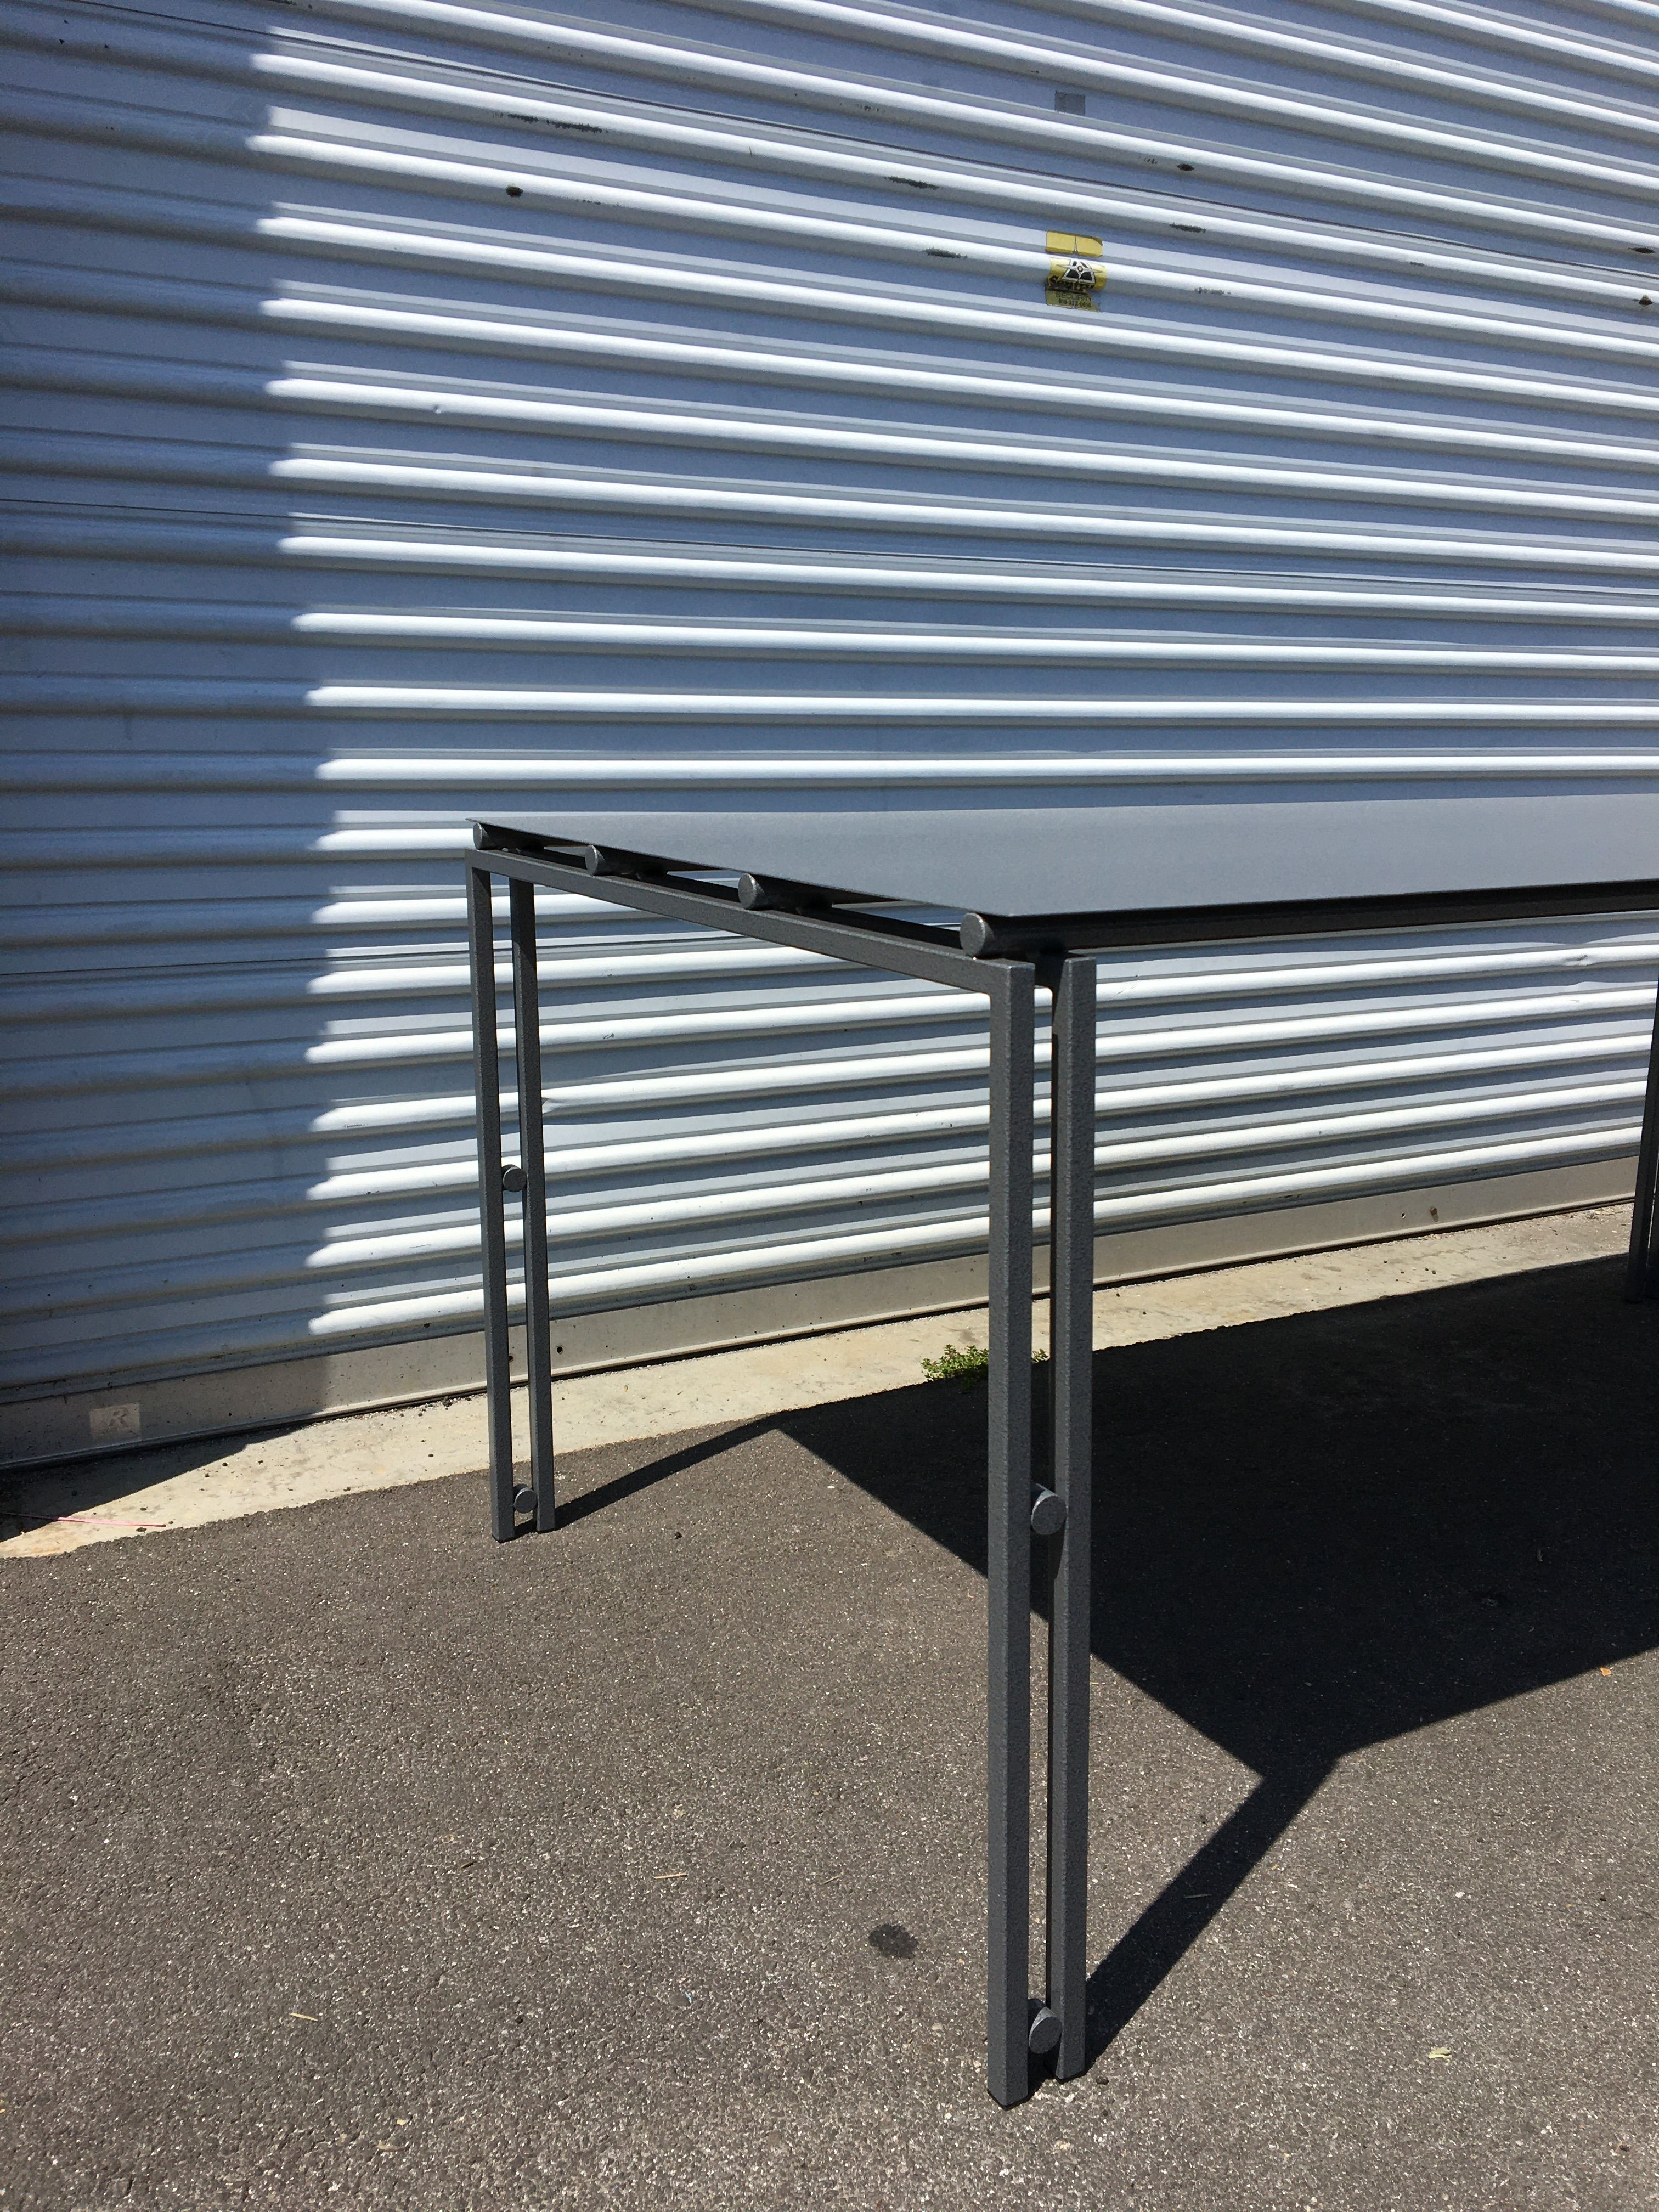 Suspension Metal Dining Table - Mid Size product image 5